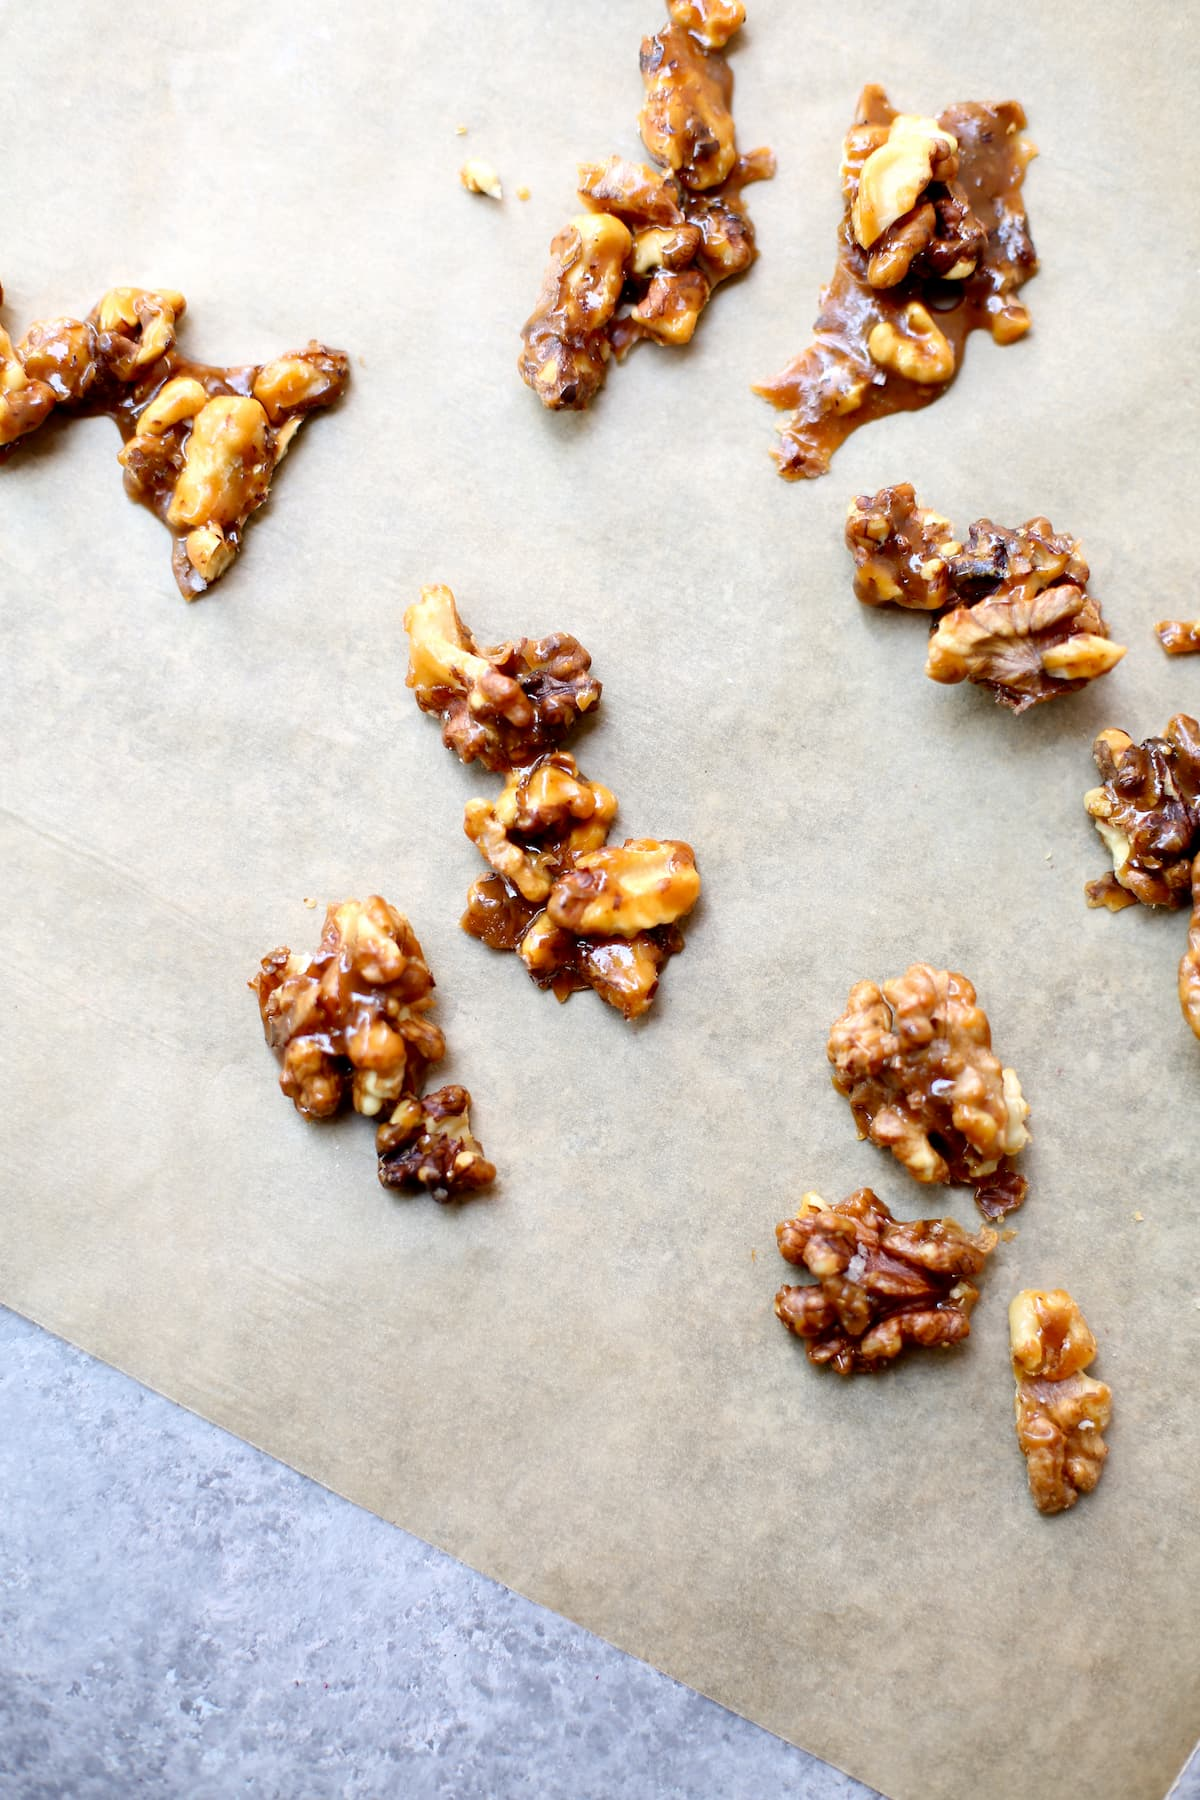 a baking tray lined with parchment paper with candied walnuts.